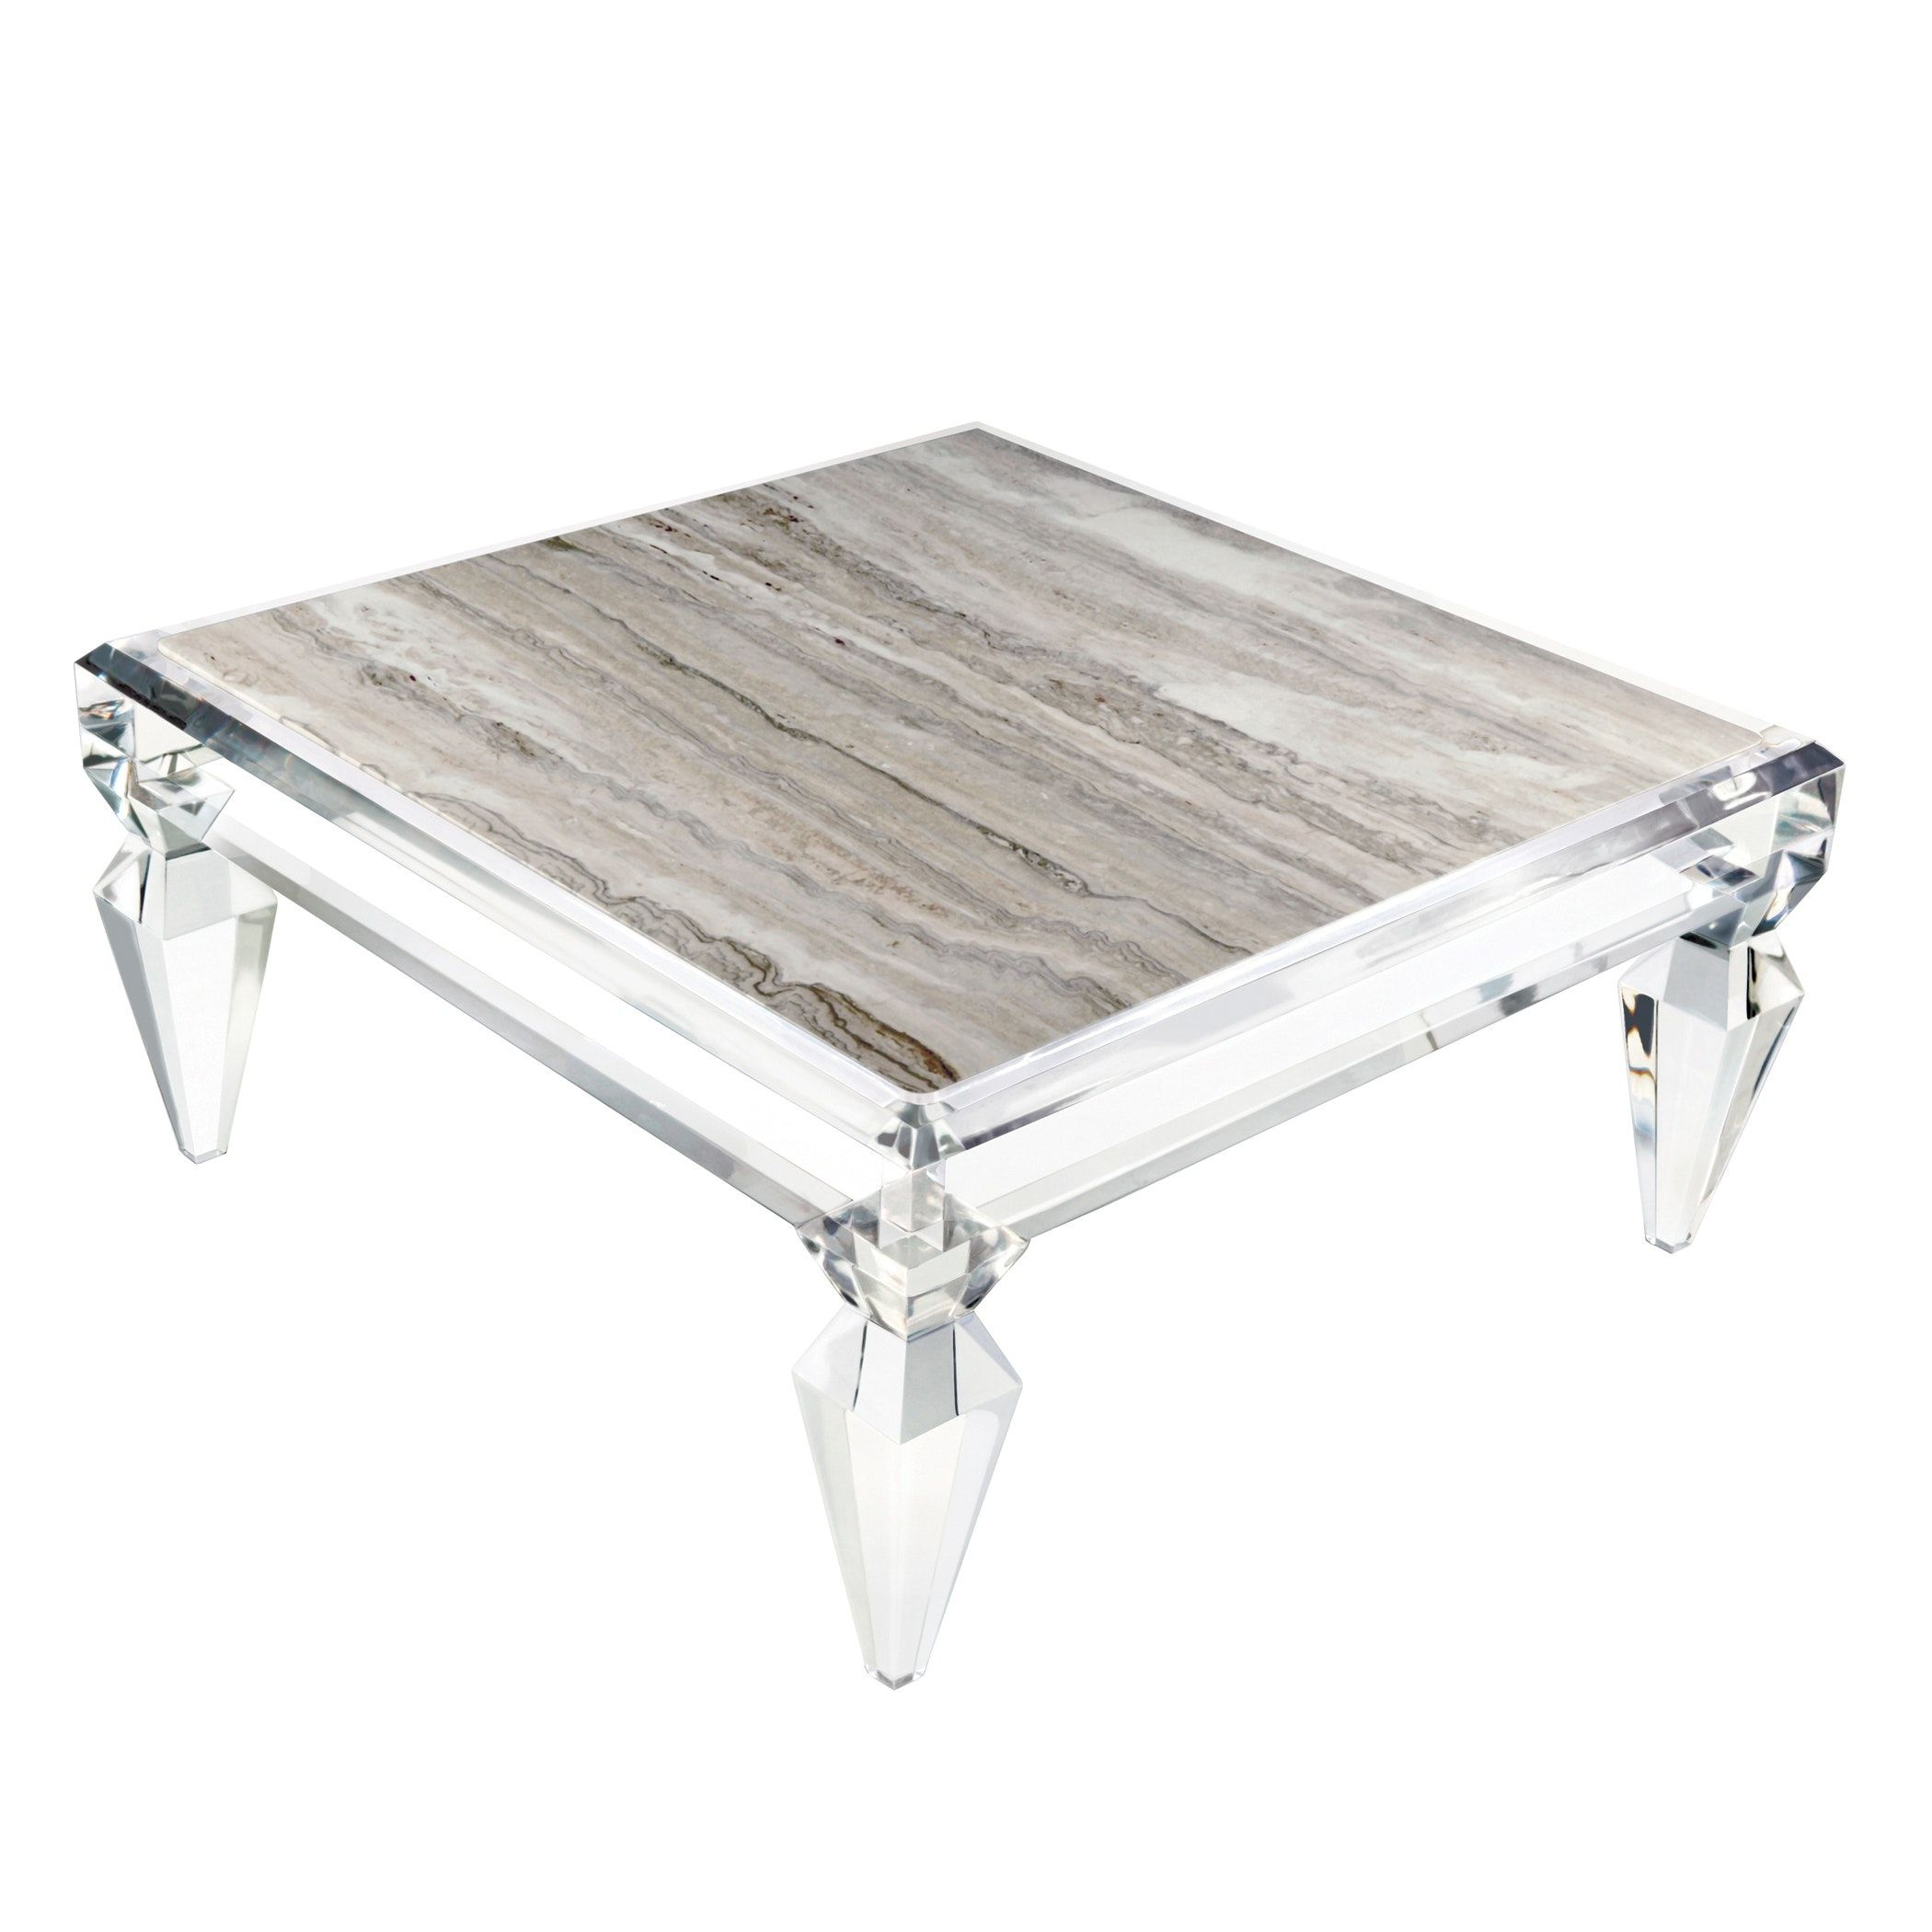 Buy Avenire Coffee Table By Craig Van Den Brulle Made To Order Designer Furniture From Dering Hall S Coll Acrylic Coffee Table Ikea Coffee Table Coffee Table [ 2100 x 2100 Pixel ]